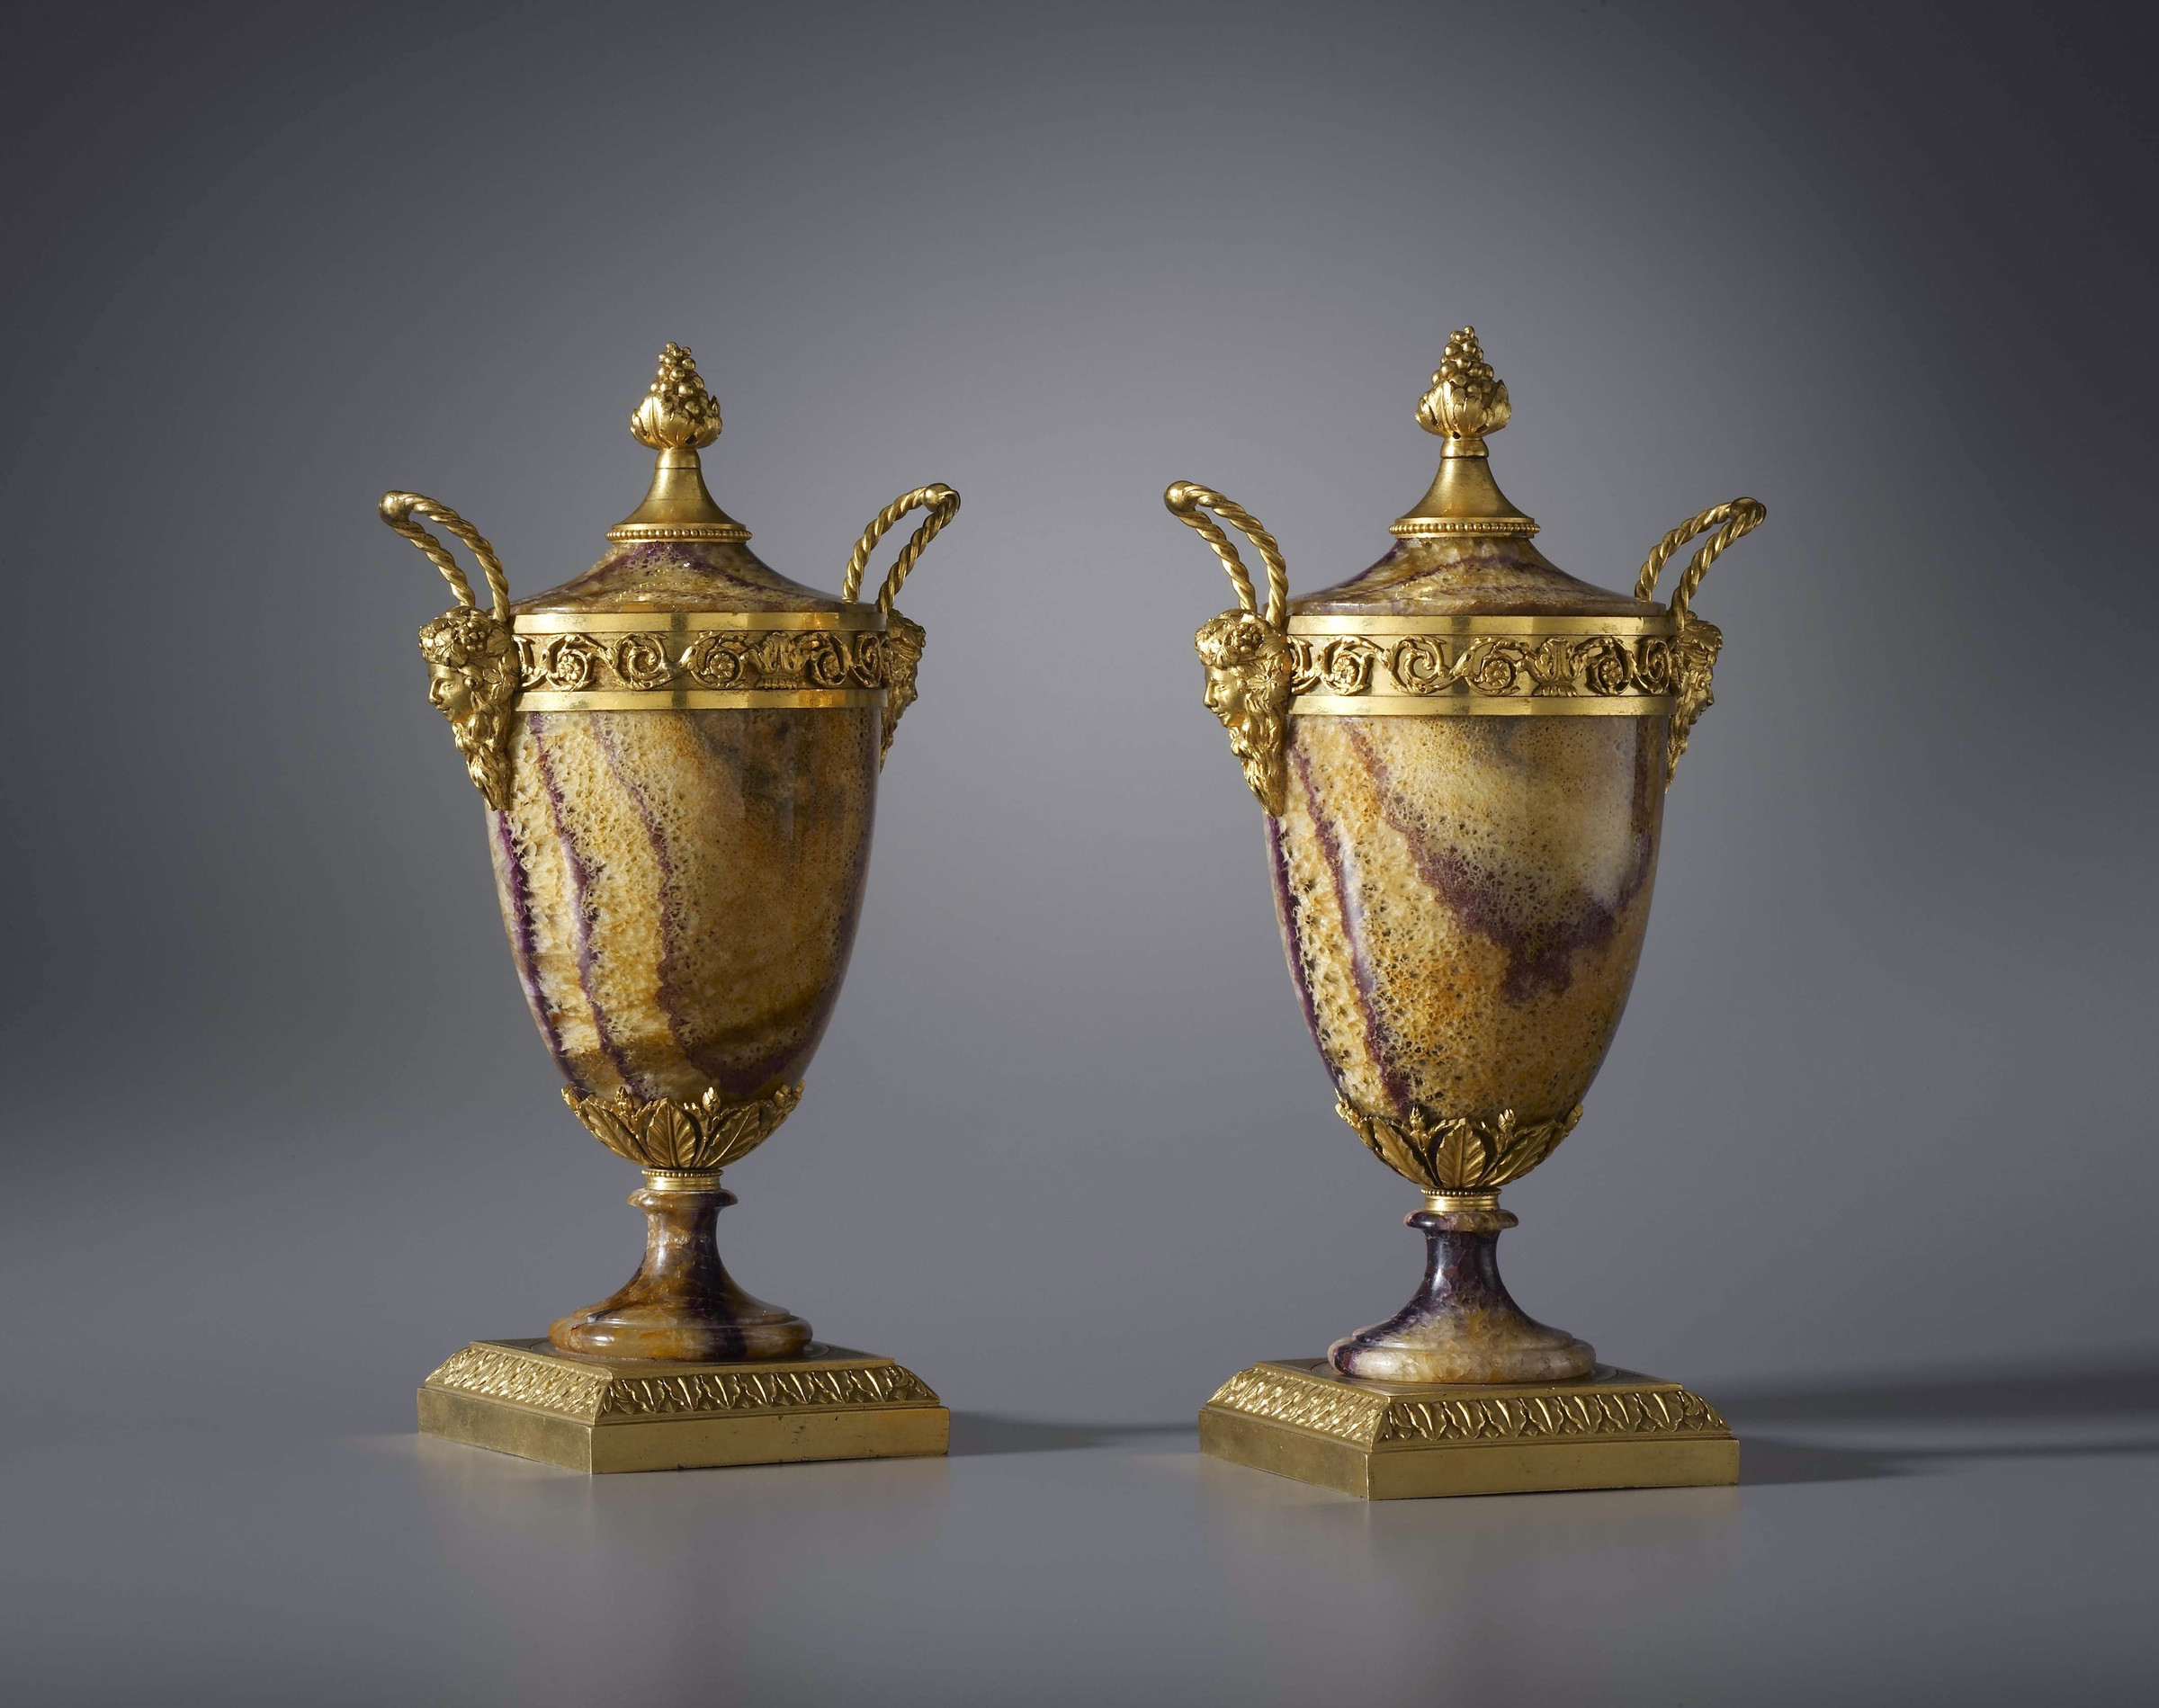 expensive vases for sale of matthew boulton attributed to a pair of georgian covered vases regarding a pair of georgian covered vases attributed to matthew boulton